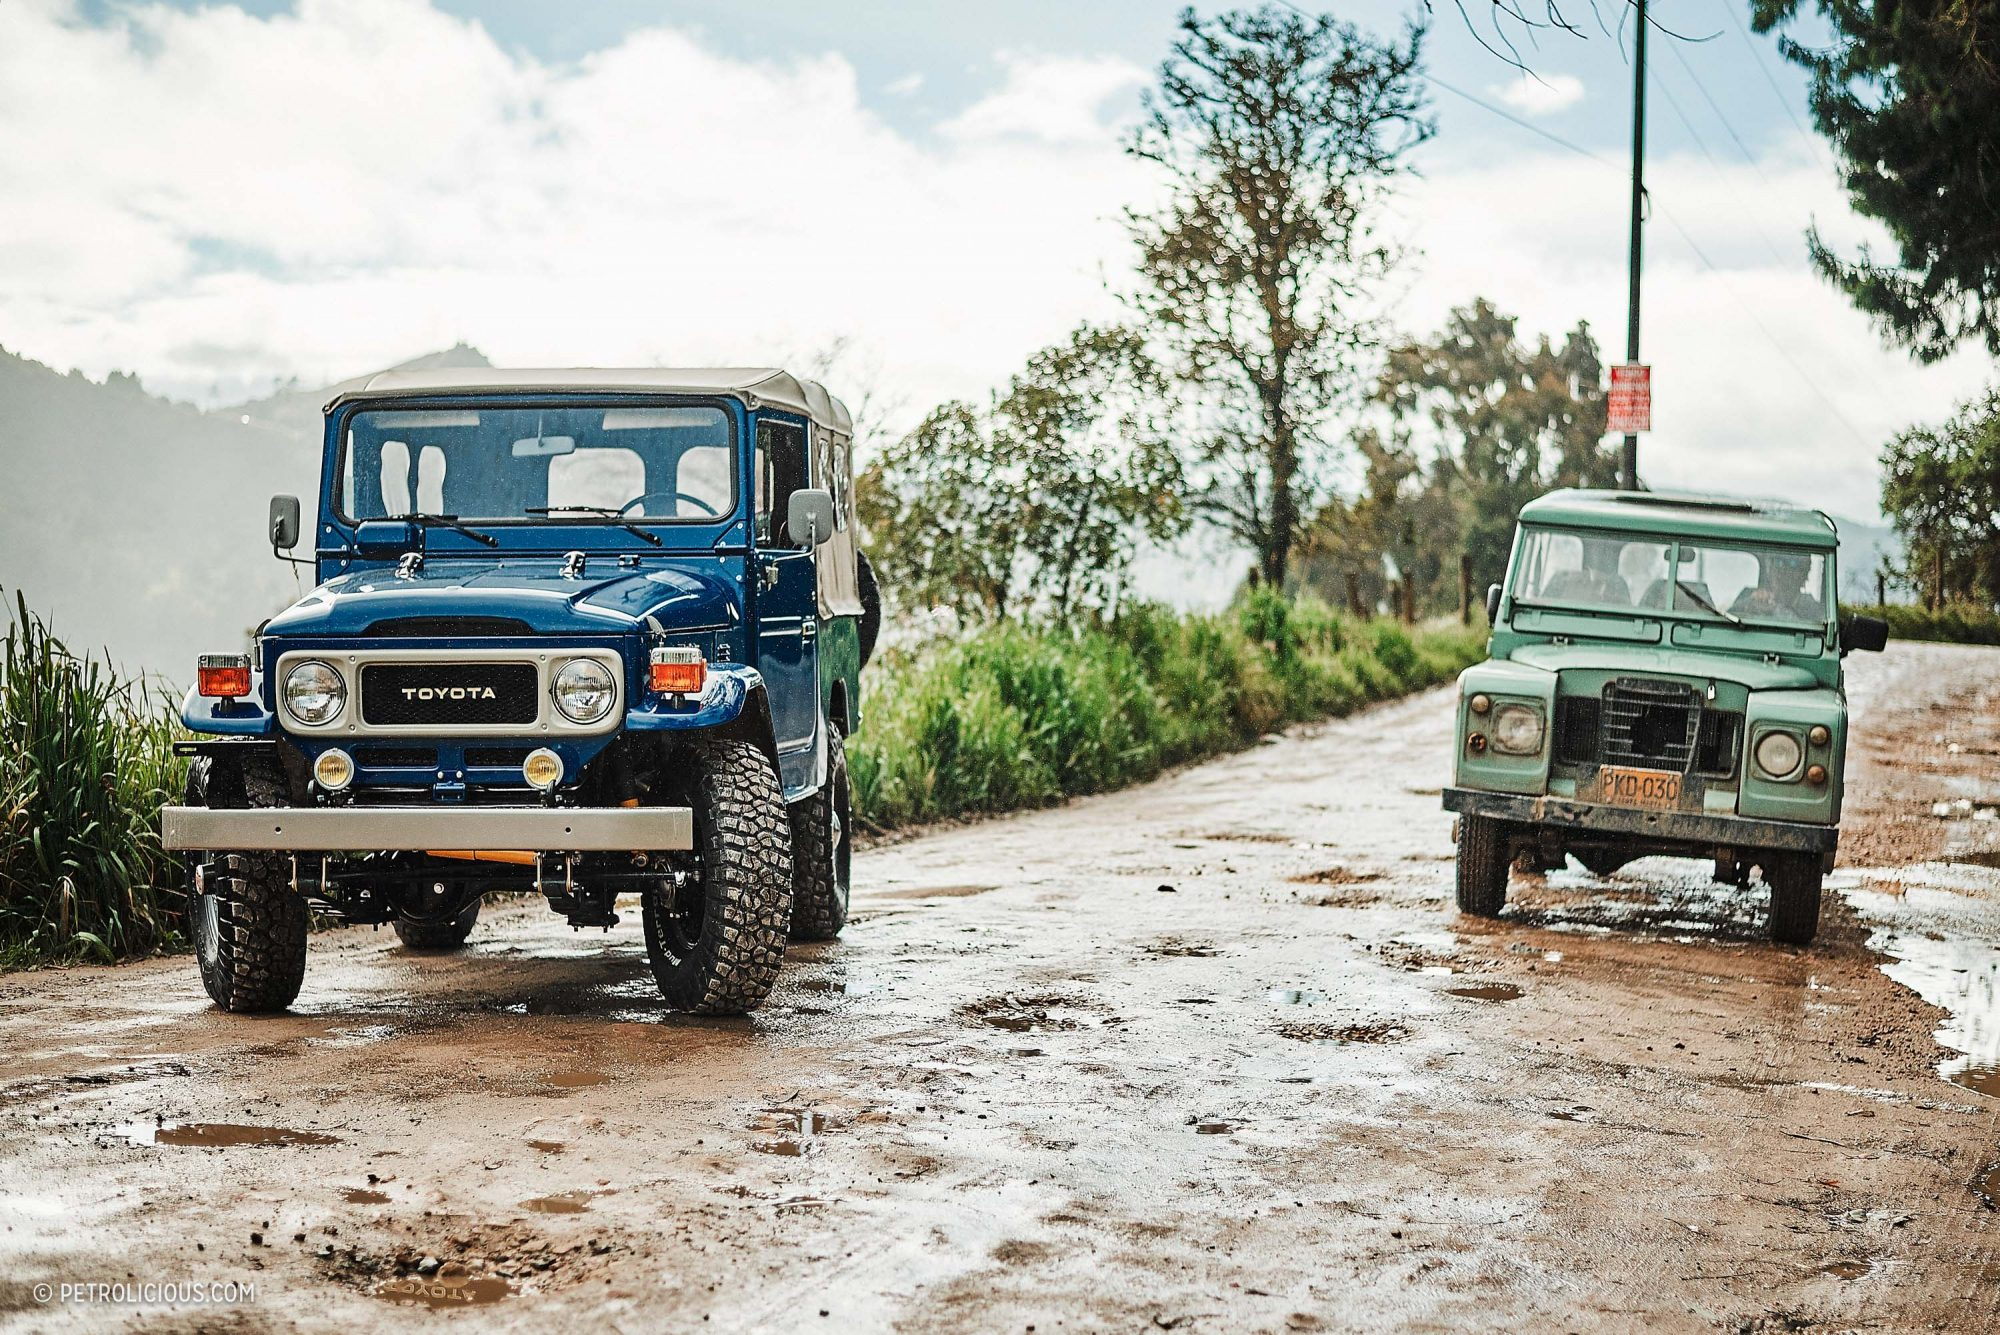 land cruiser of the day enter the world of toyota land cruisers land cruiser of the day enter the